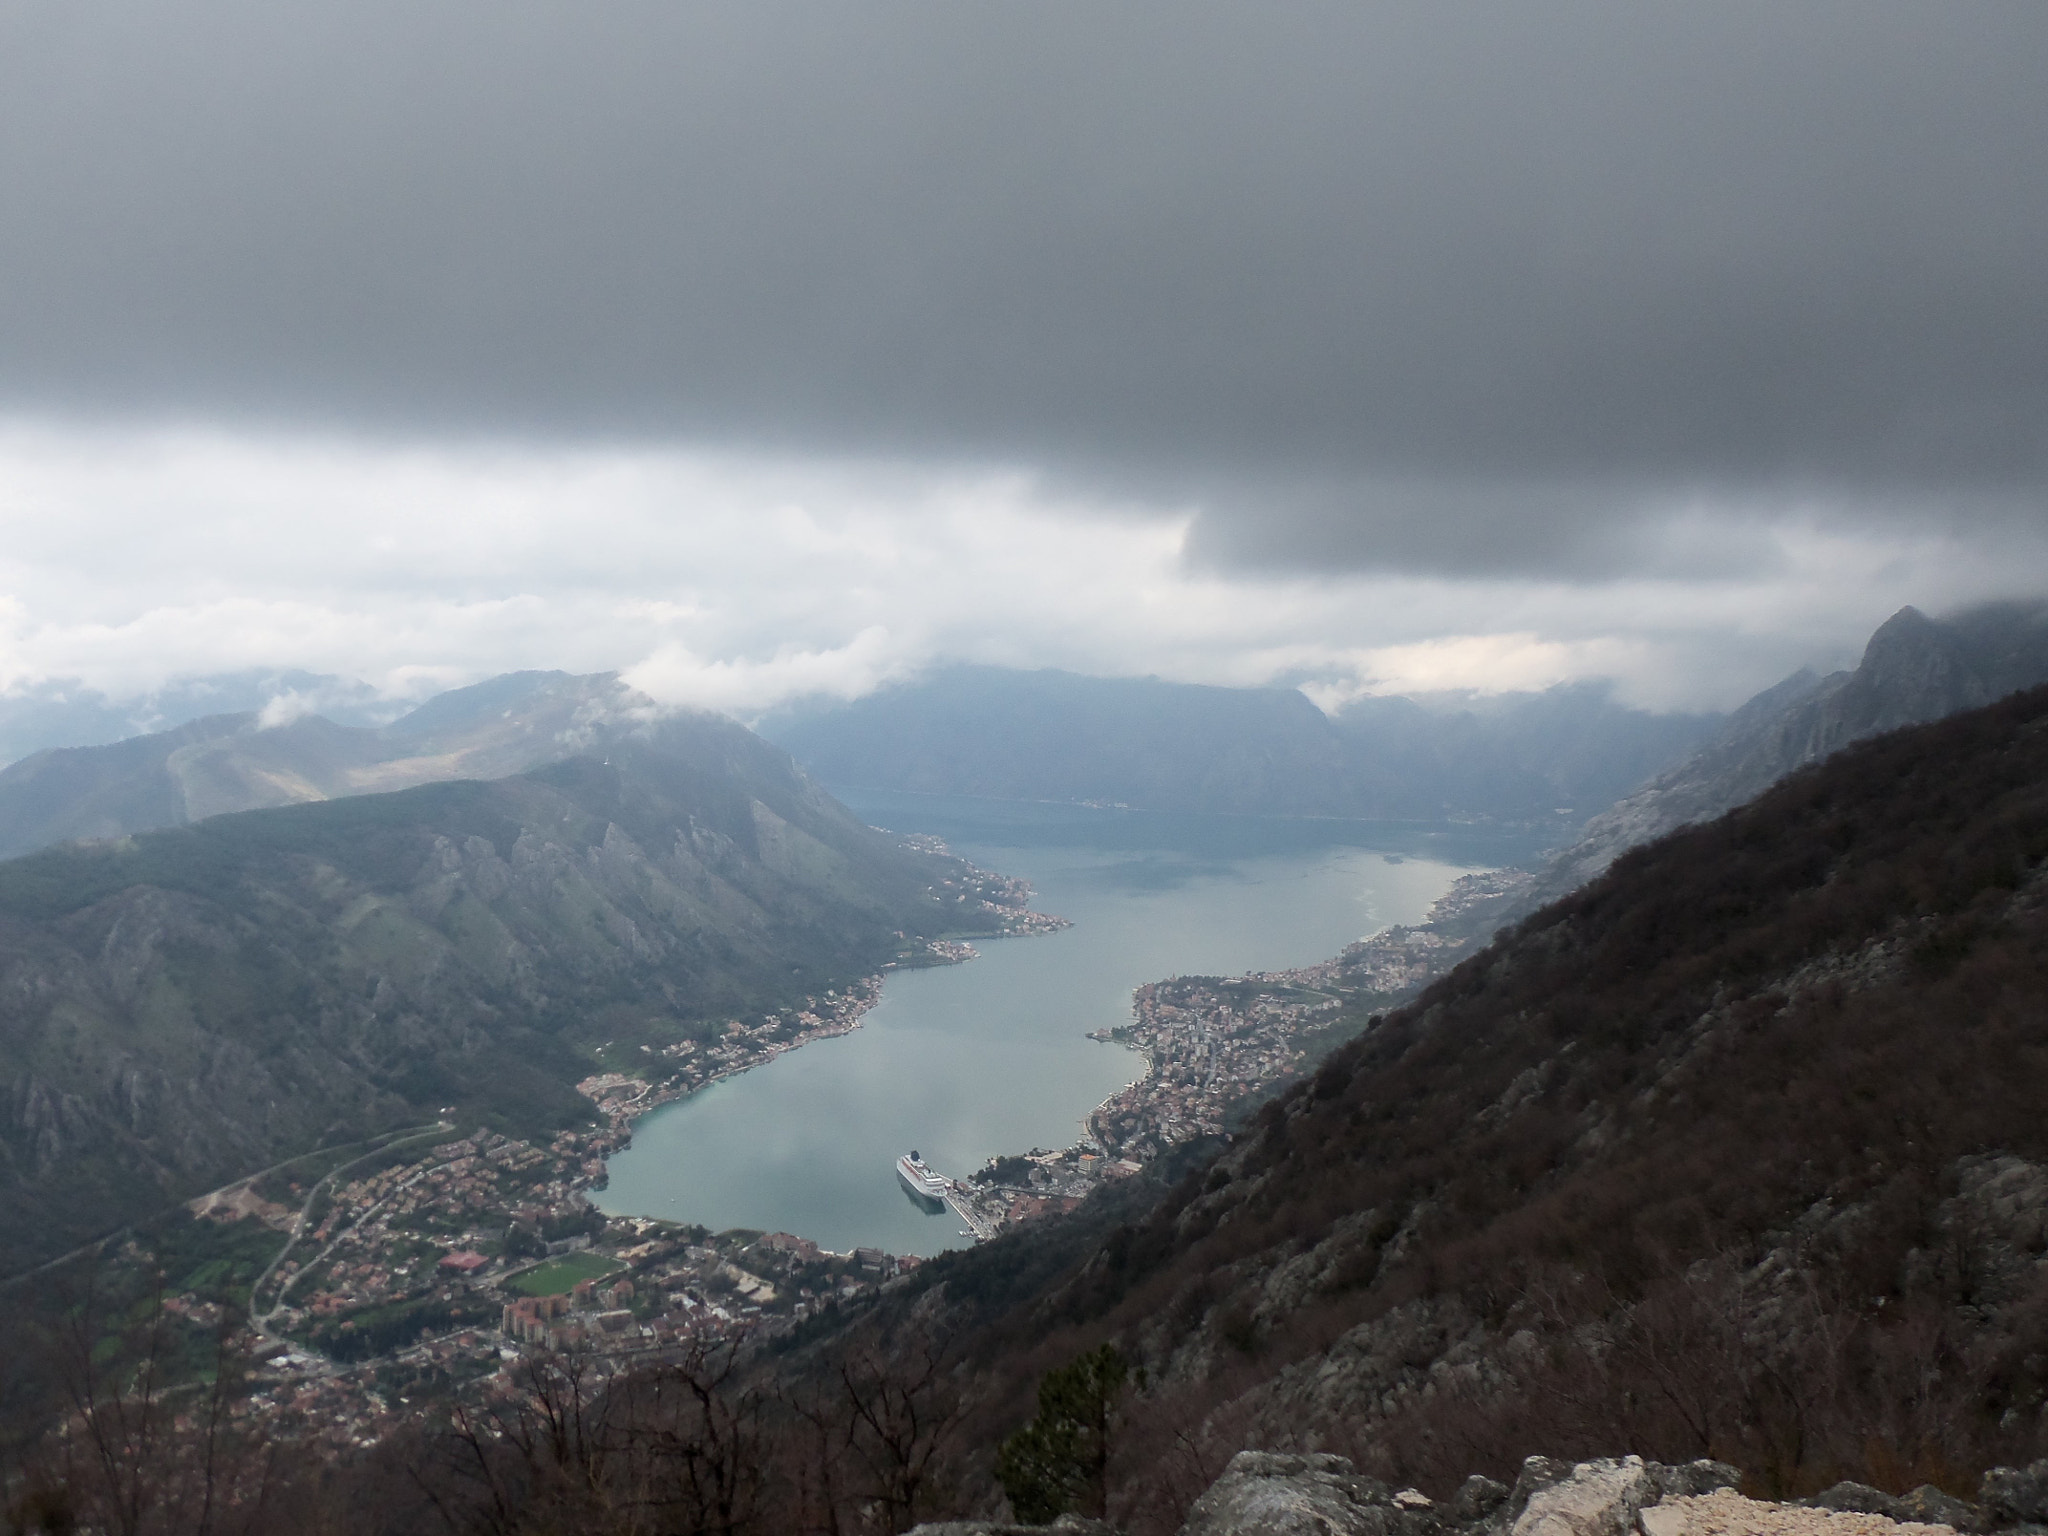 Photograph Kotor/Crna gora by pet_ros on 500px